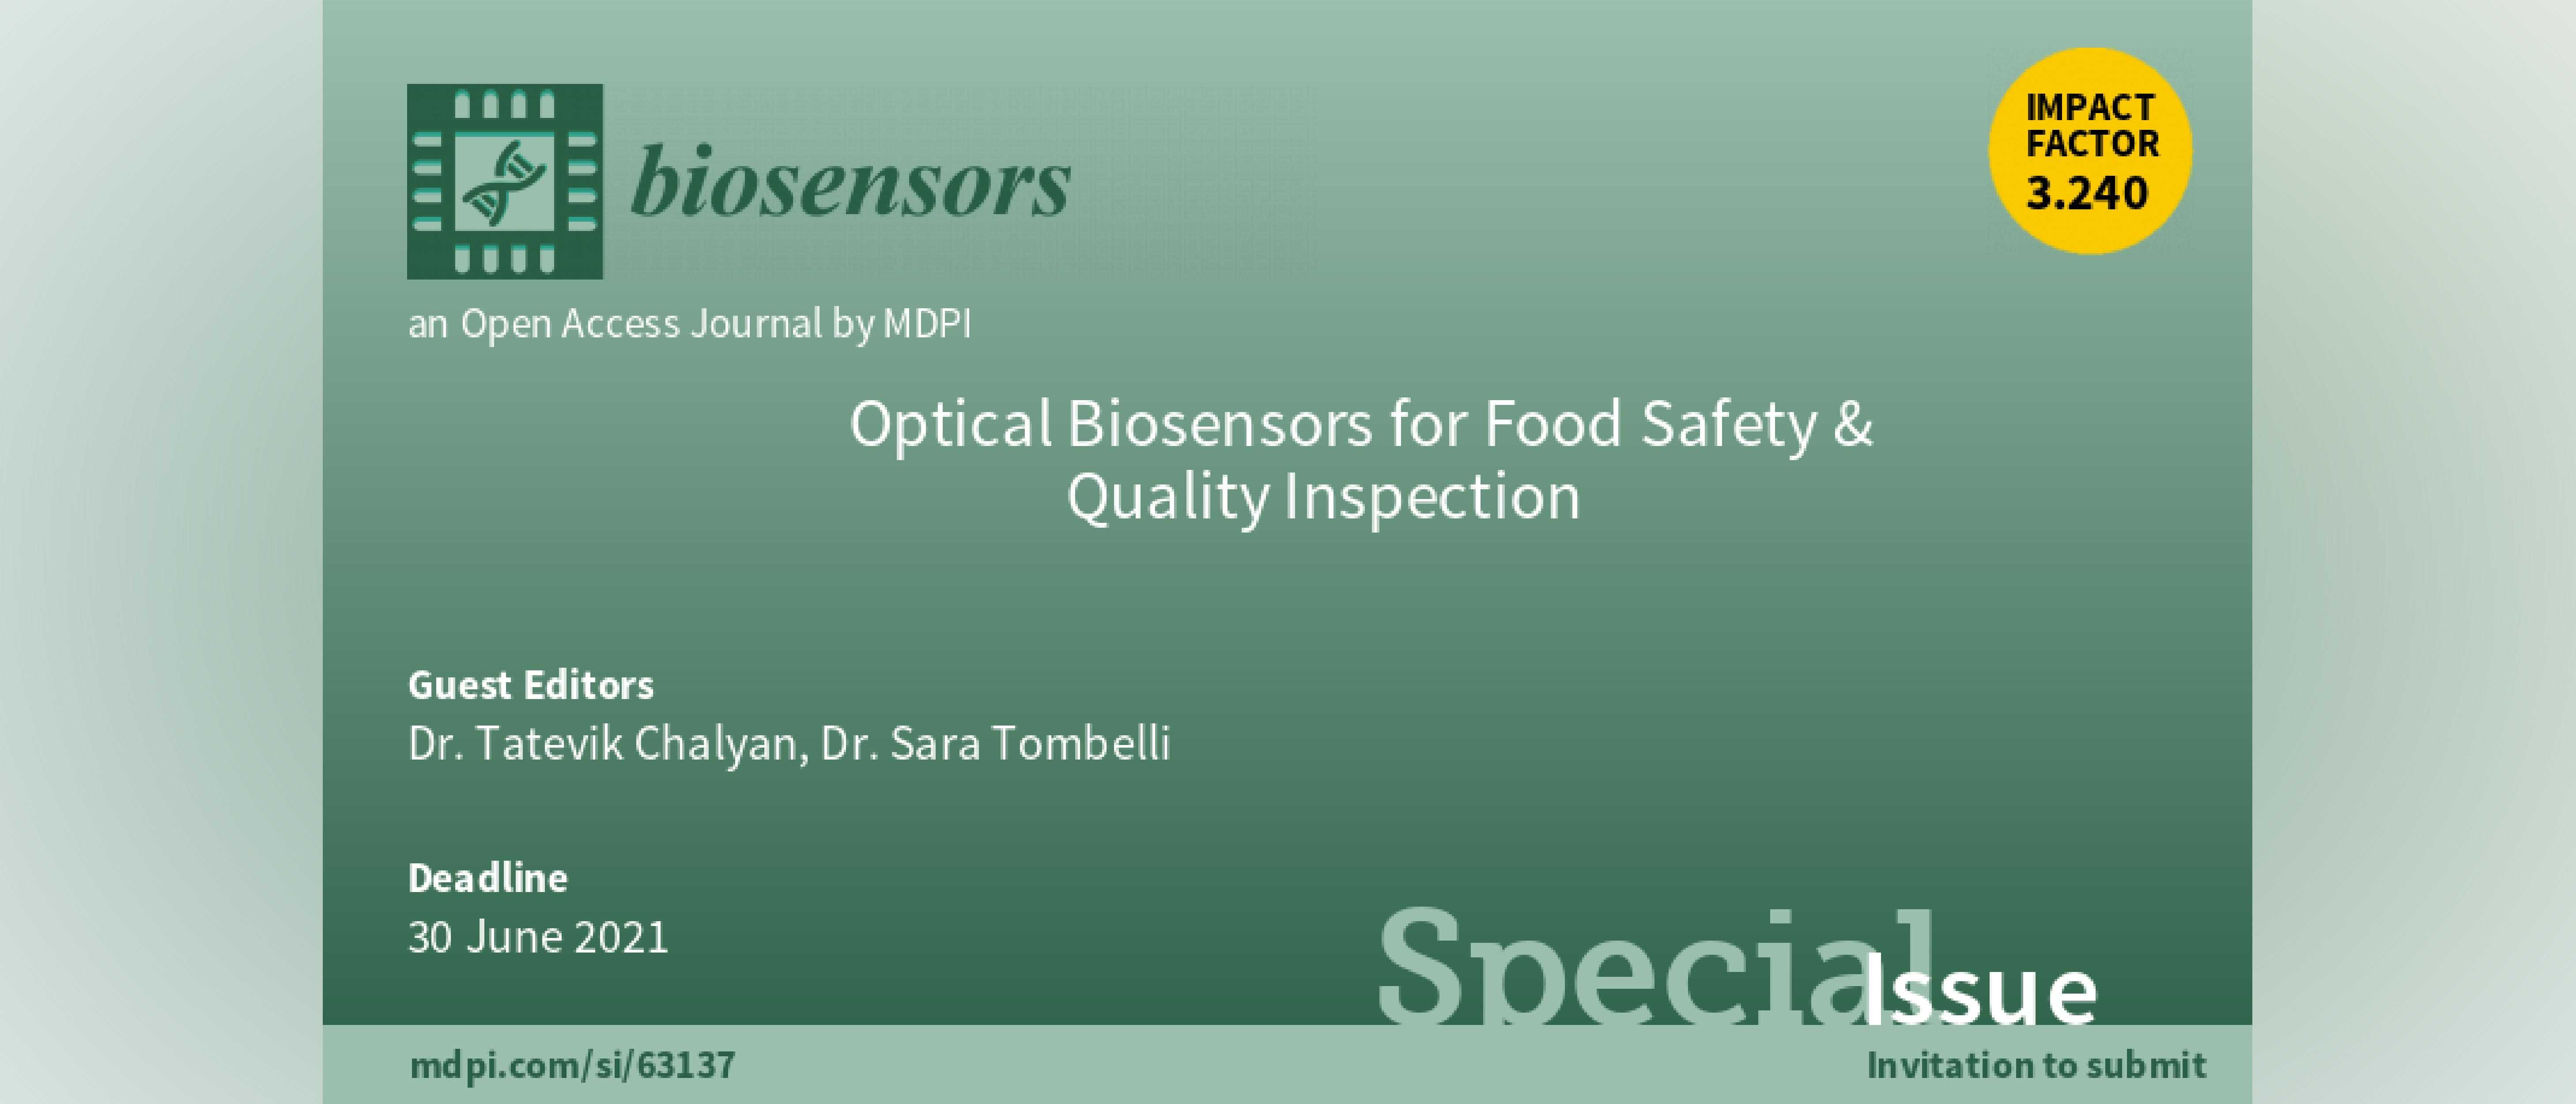 Biosensors Special Issue Tatevik Chalyan 01